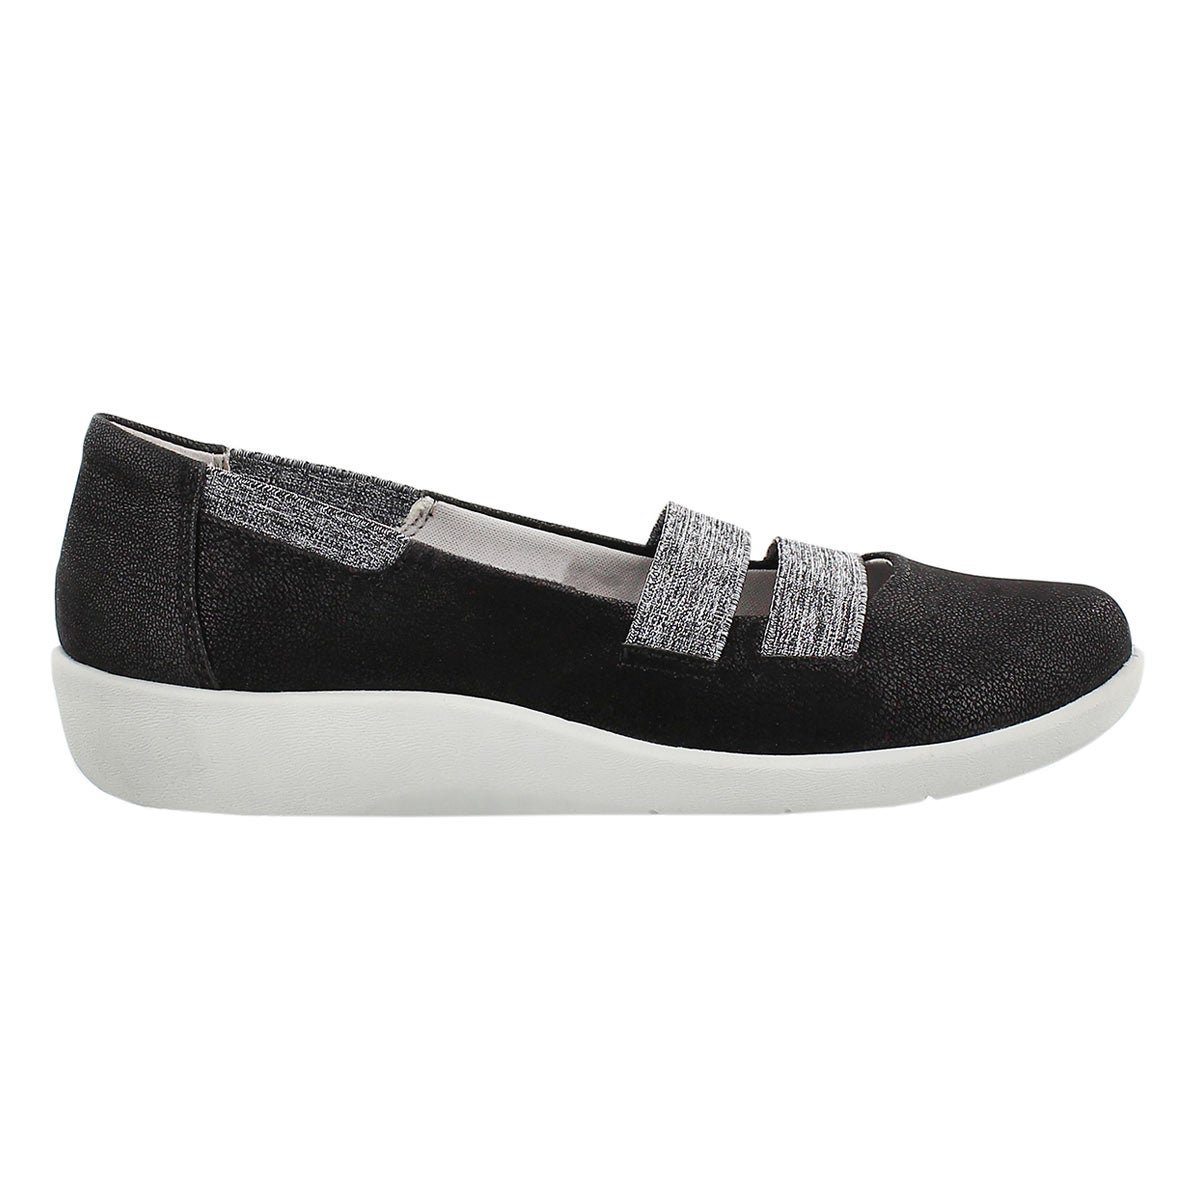 Lds Sillian Rest blk slip on casual shoe